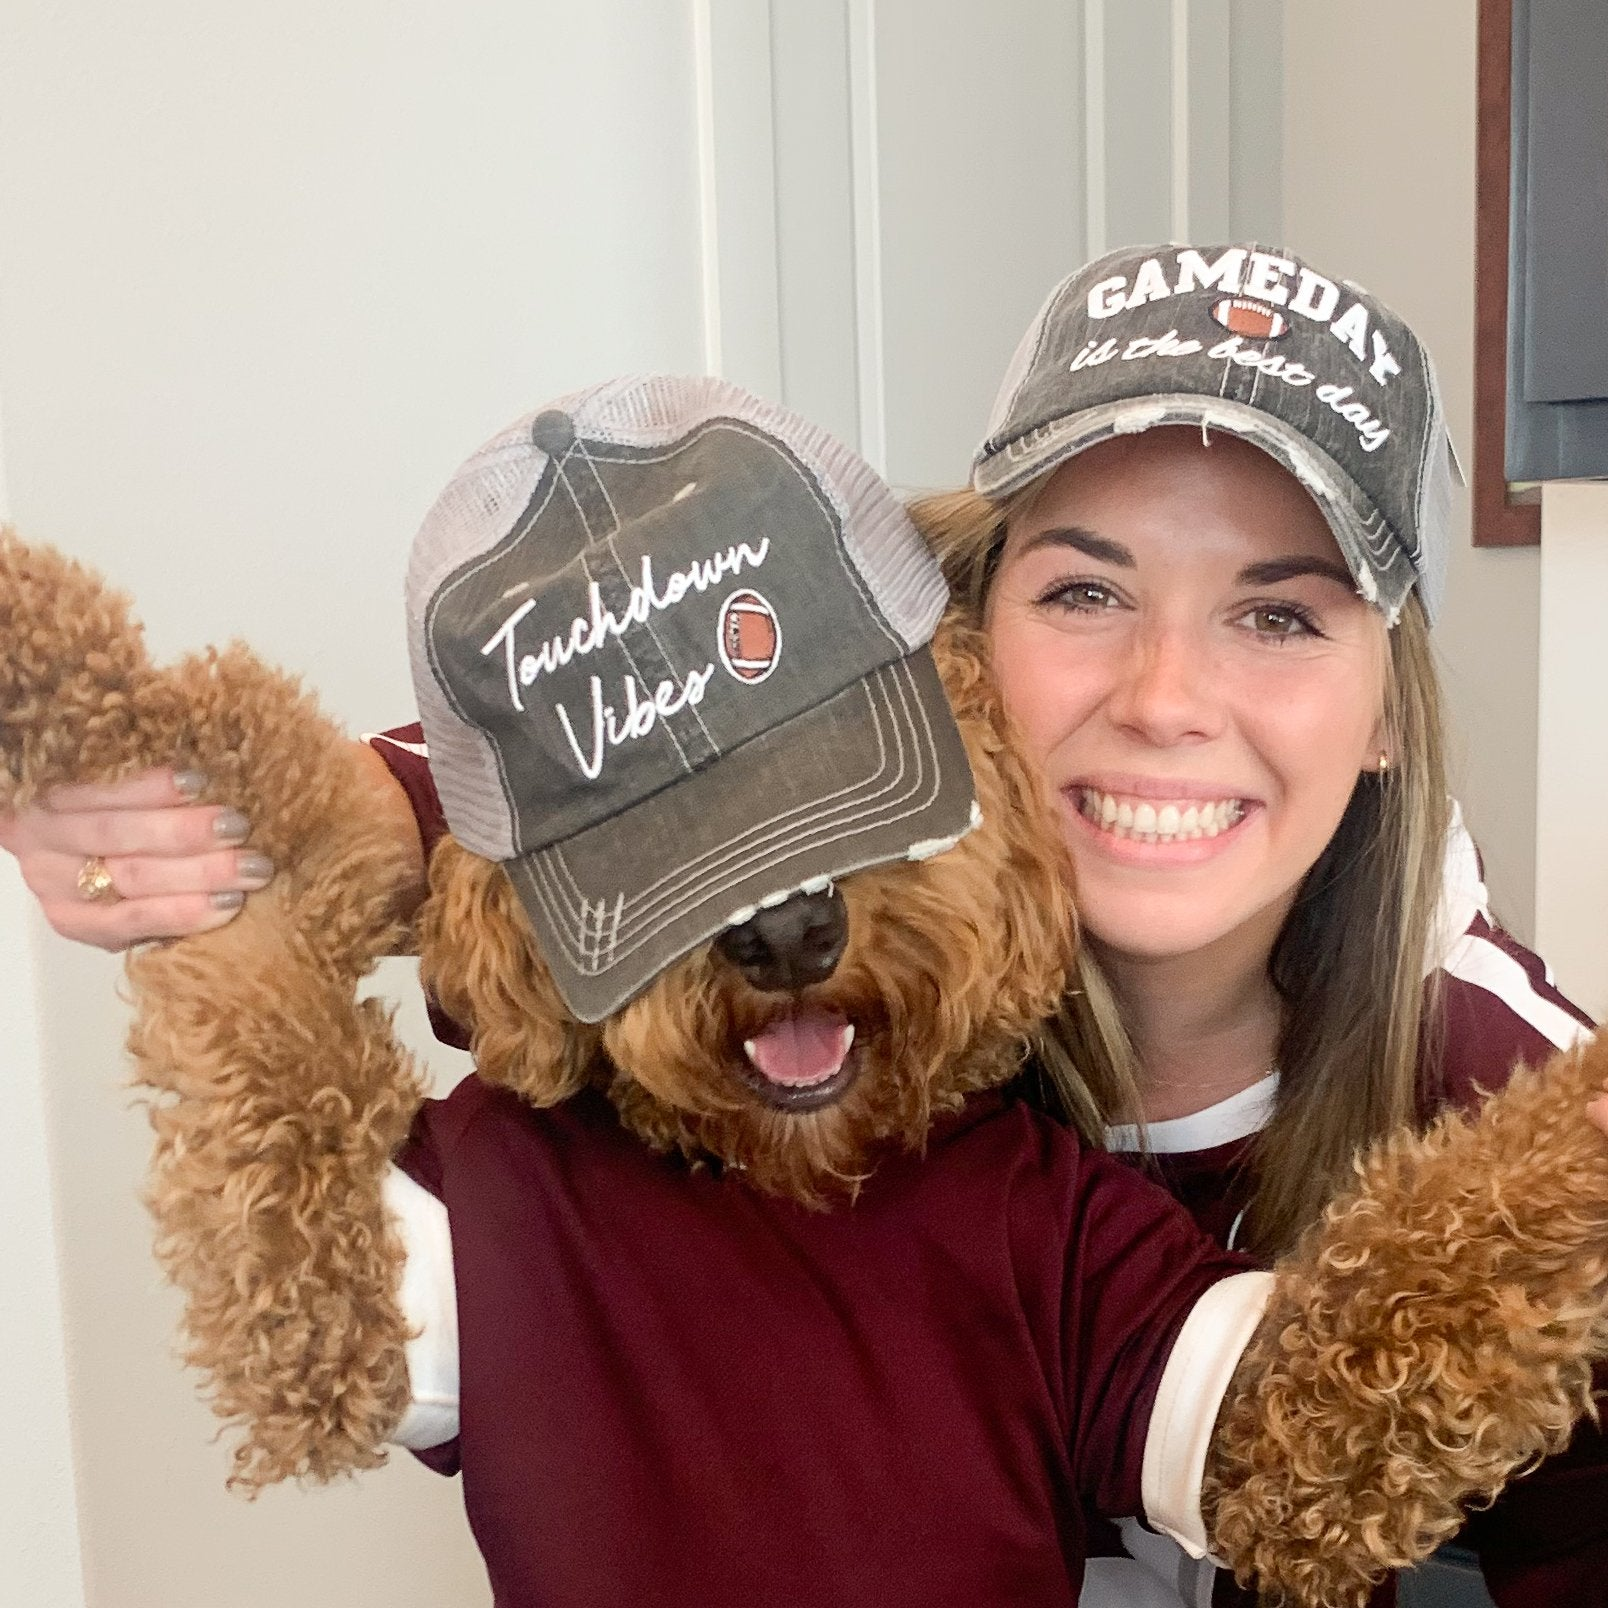 woman and her dog dressed up for a football game in touchdown vibes and game day trucker hats